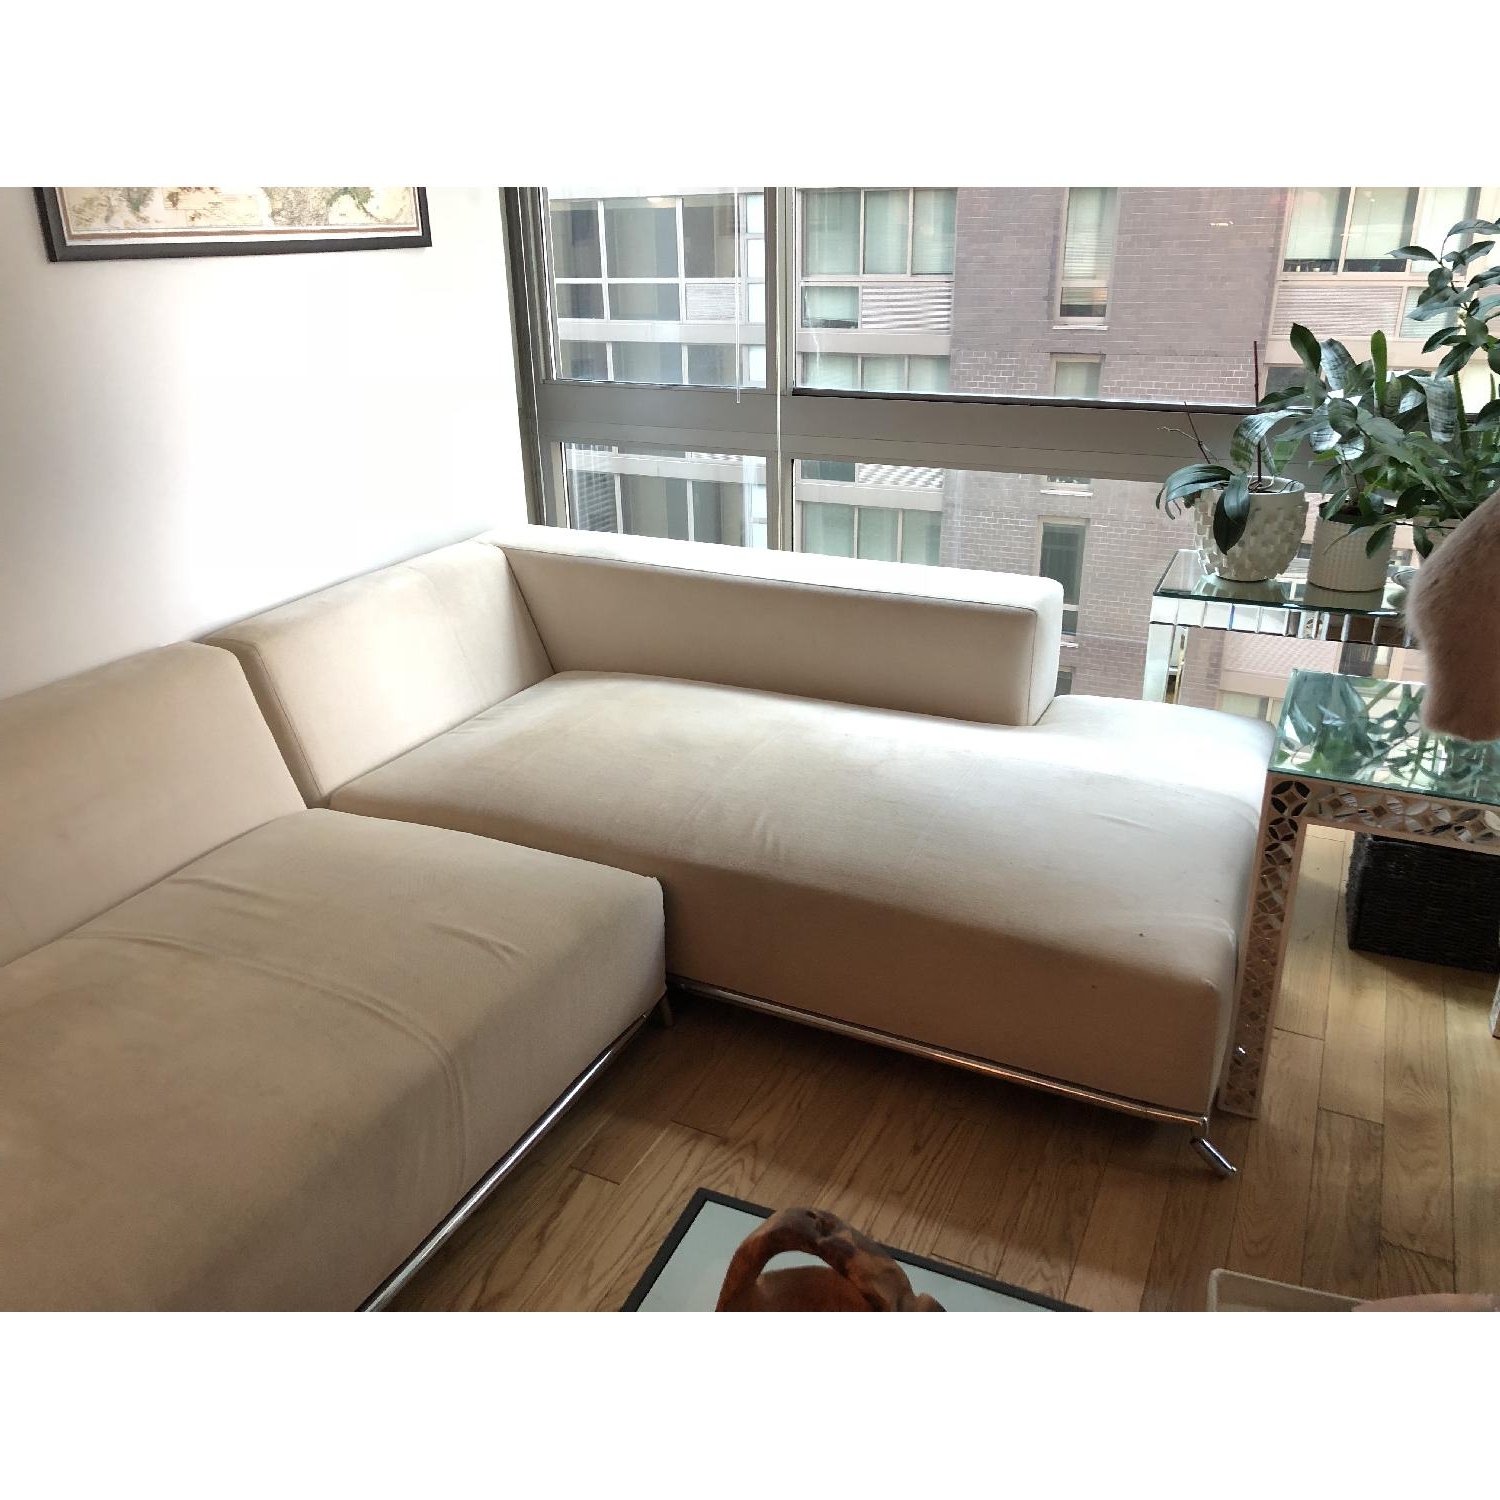 Tenny Cognac 2 Piece Left Facing Chaise Sectionals With 2 Headrest Within Most Recent 2 Piece Chaise Sectional Sofa (View 7 of 20)